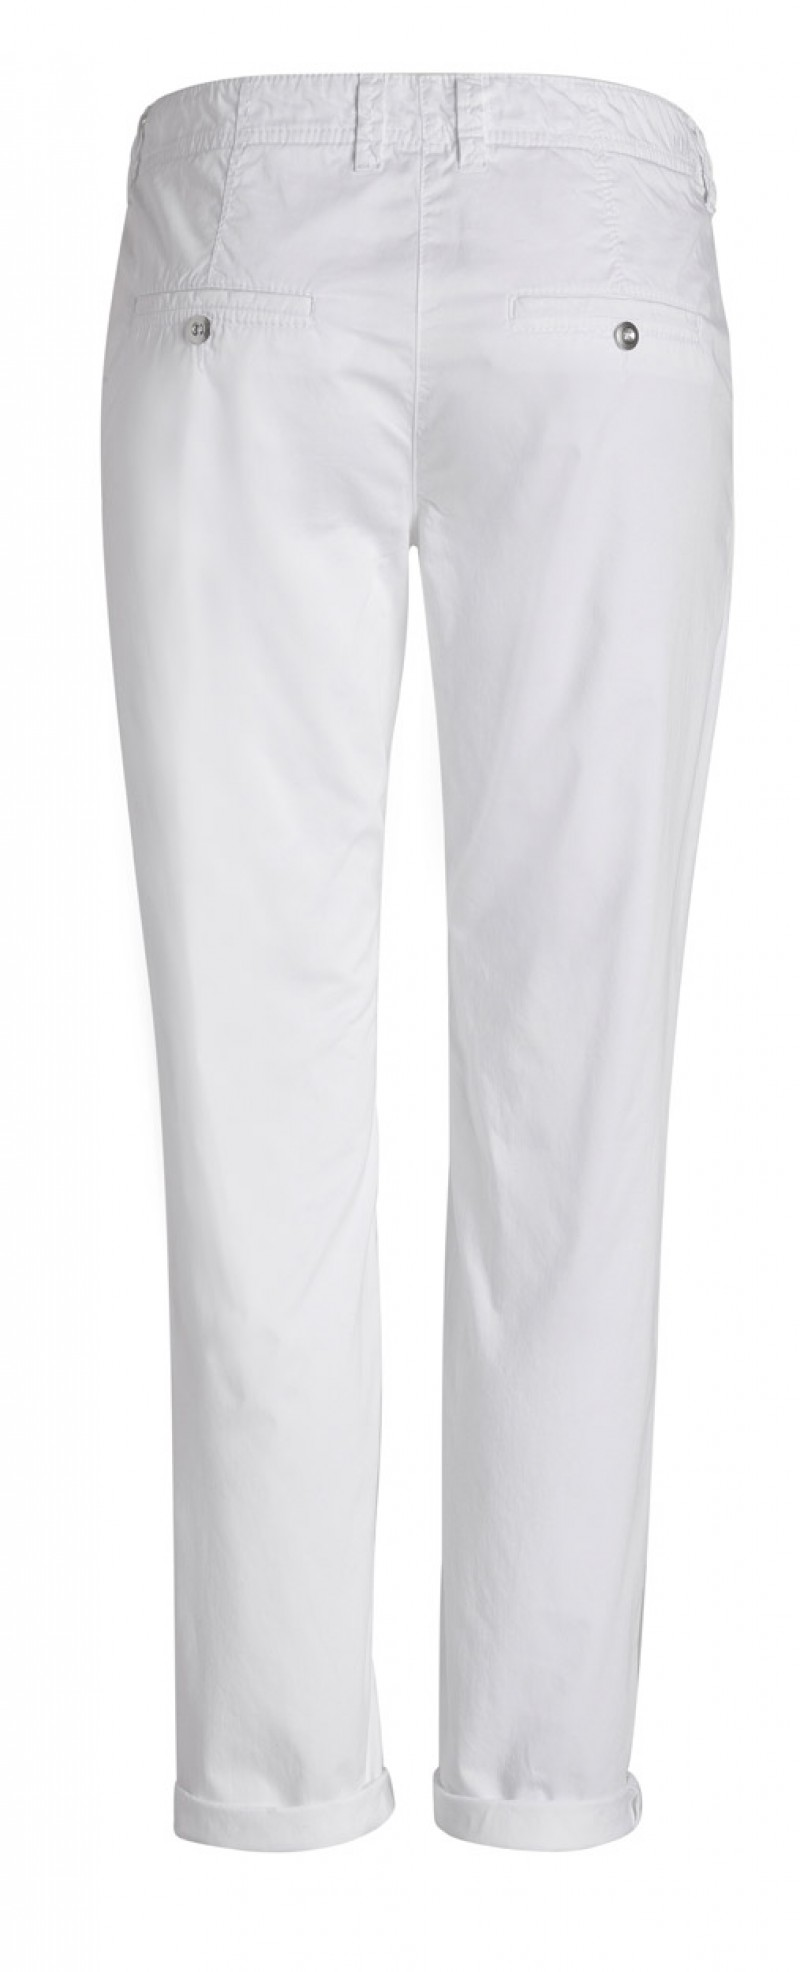 MAC Summer Feeling New - Chino - White